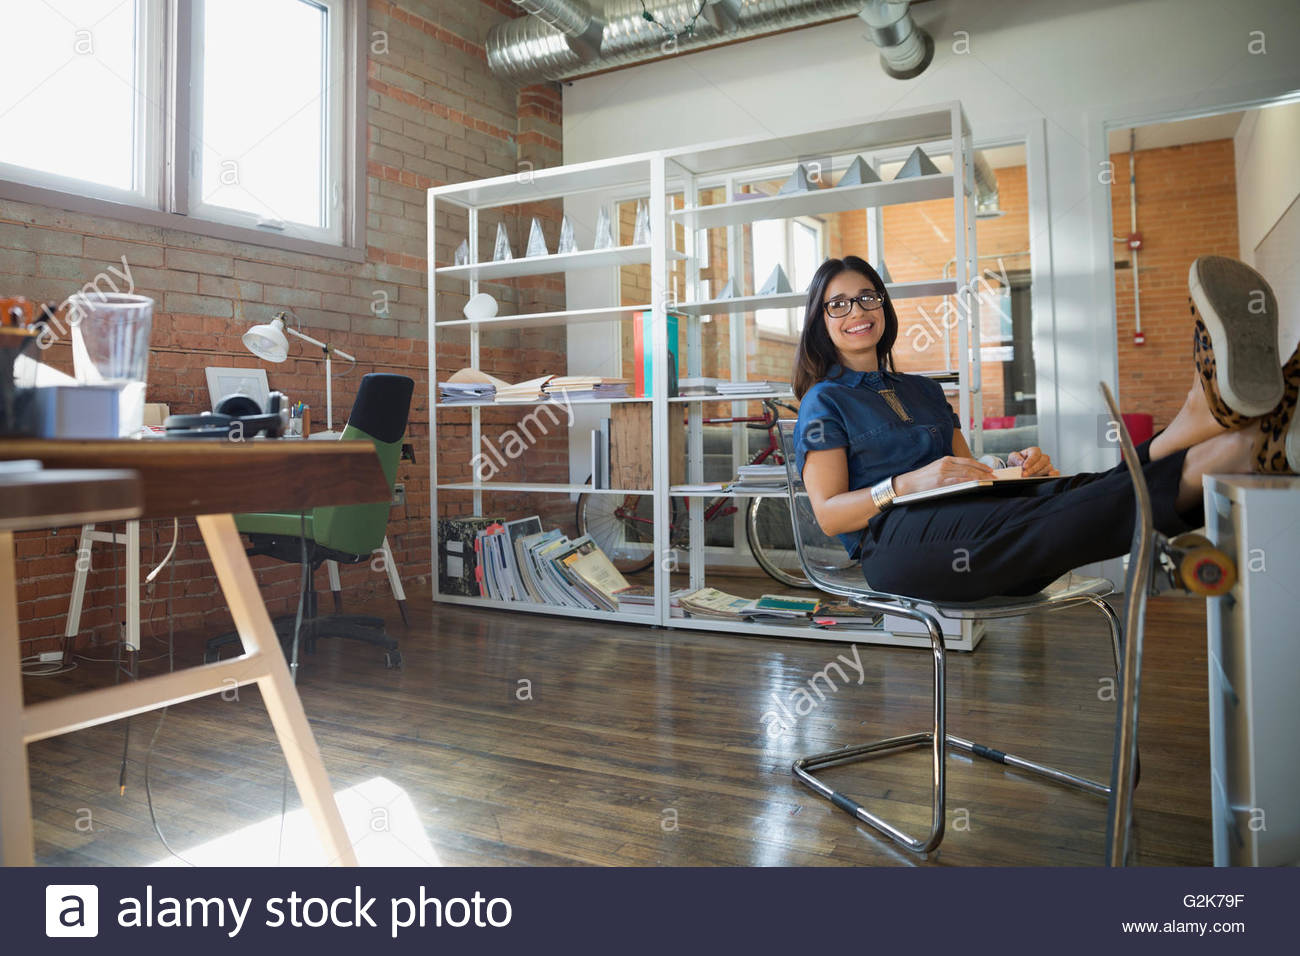 Smiling creative businesswoman with laptop and feet up in office - Stock Image